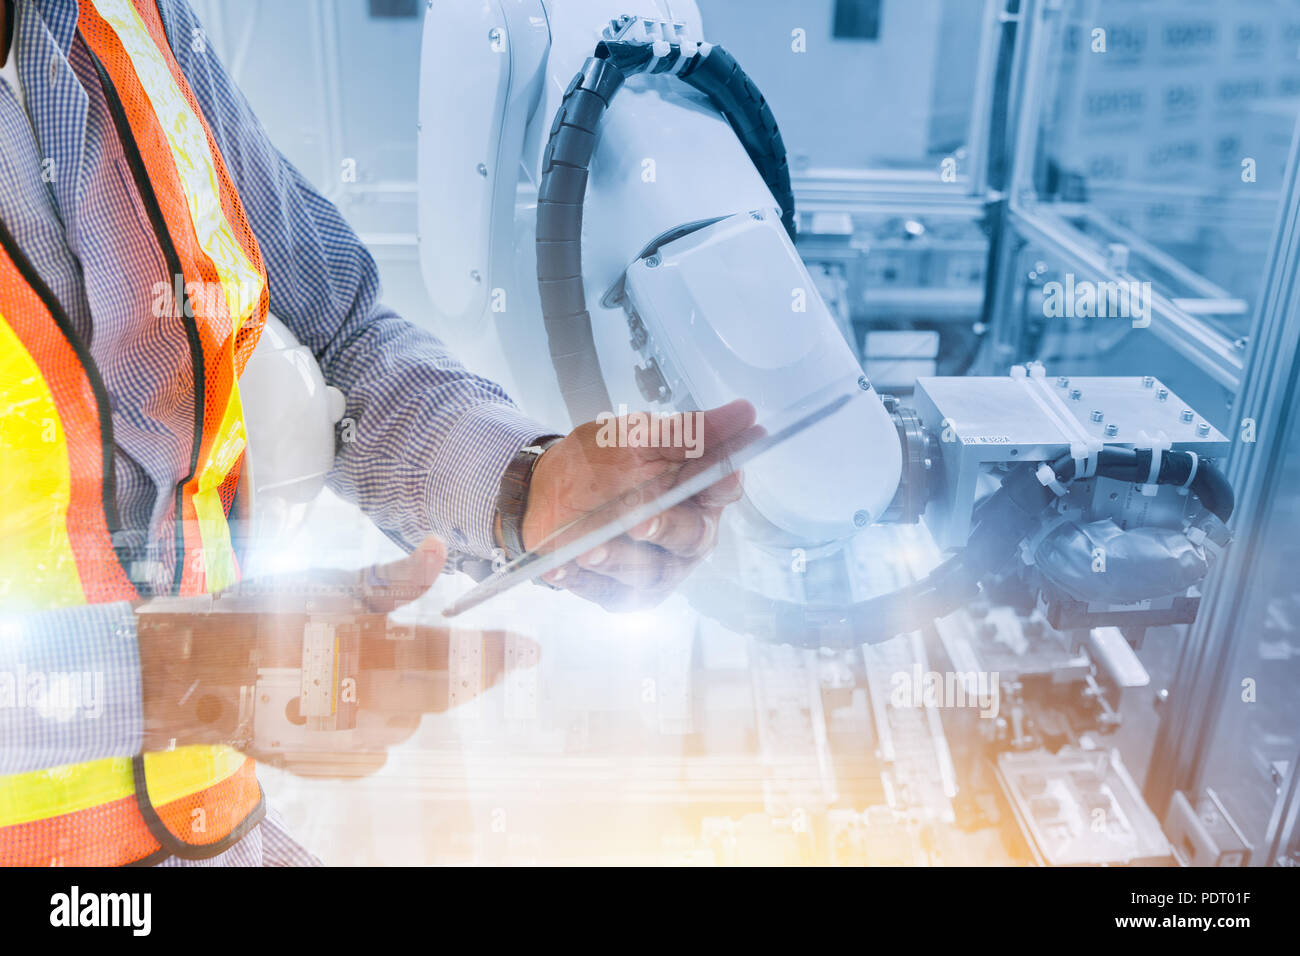 worker using tablet control robot arm in production line for robotic engineering concept - Stock Image